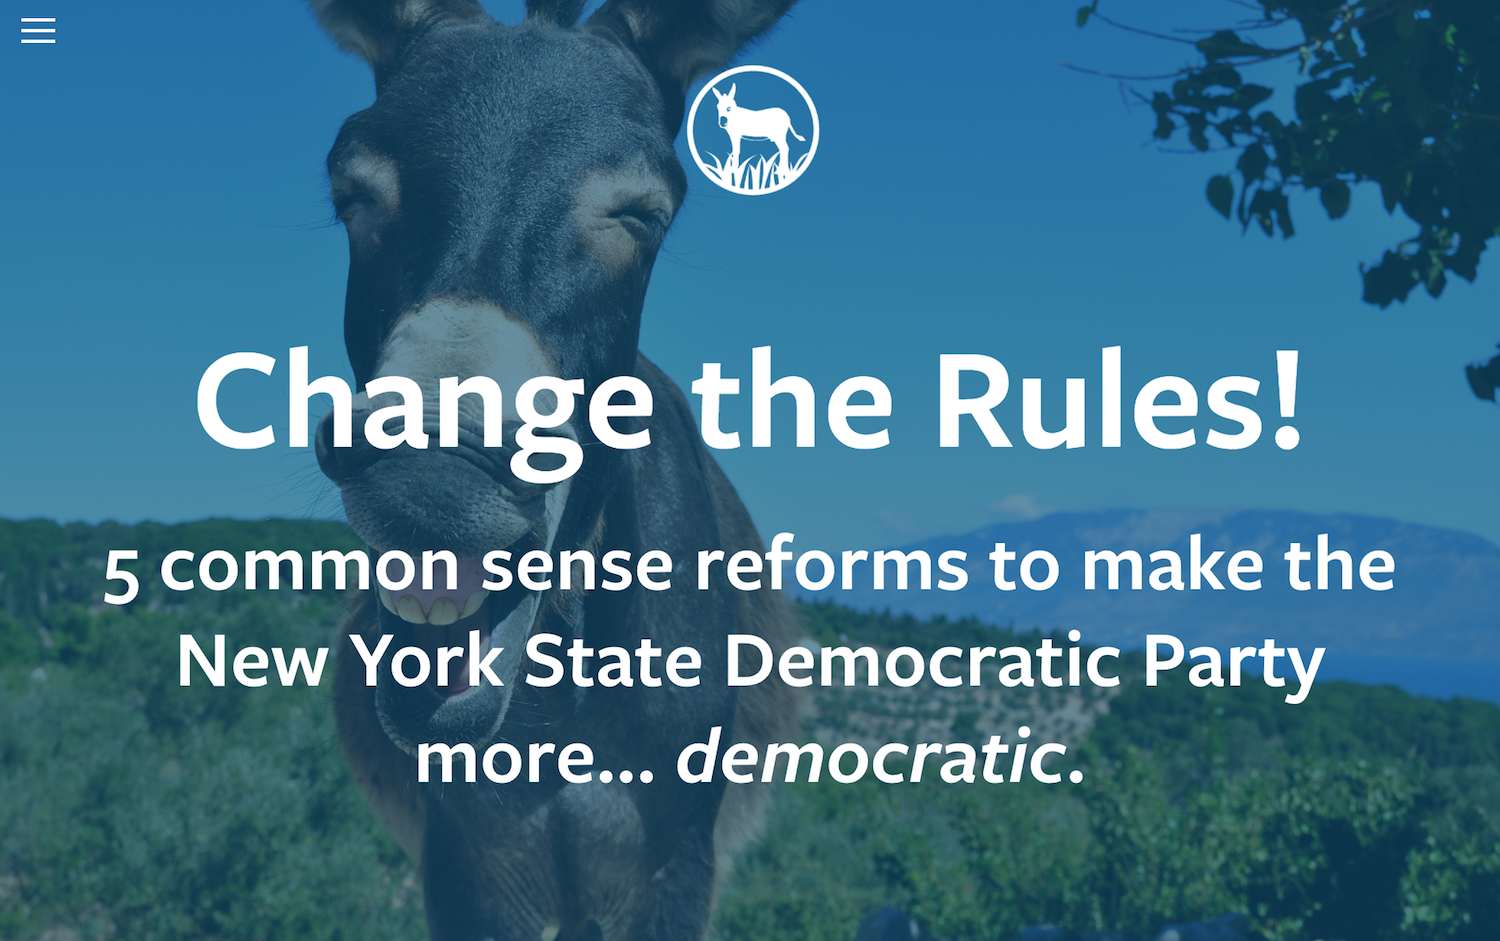 Change the rules and make the NYS Democratic Party more